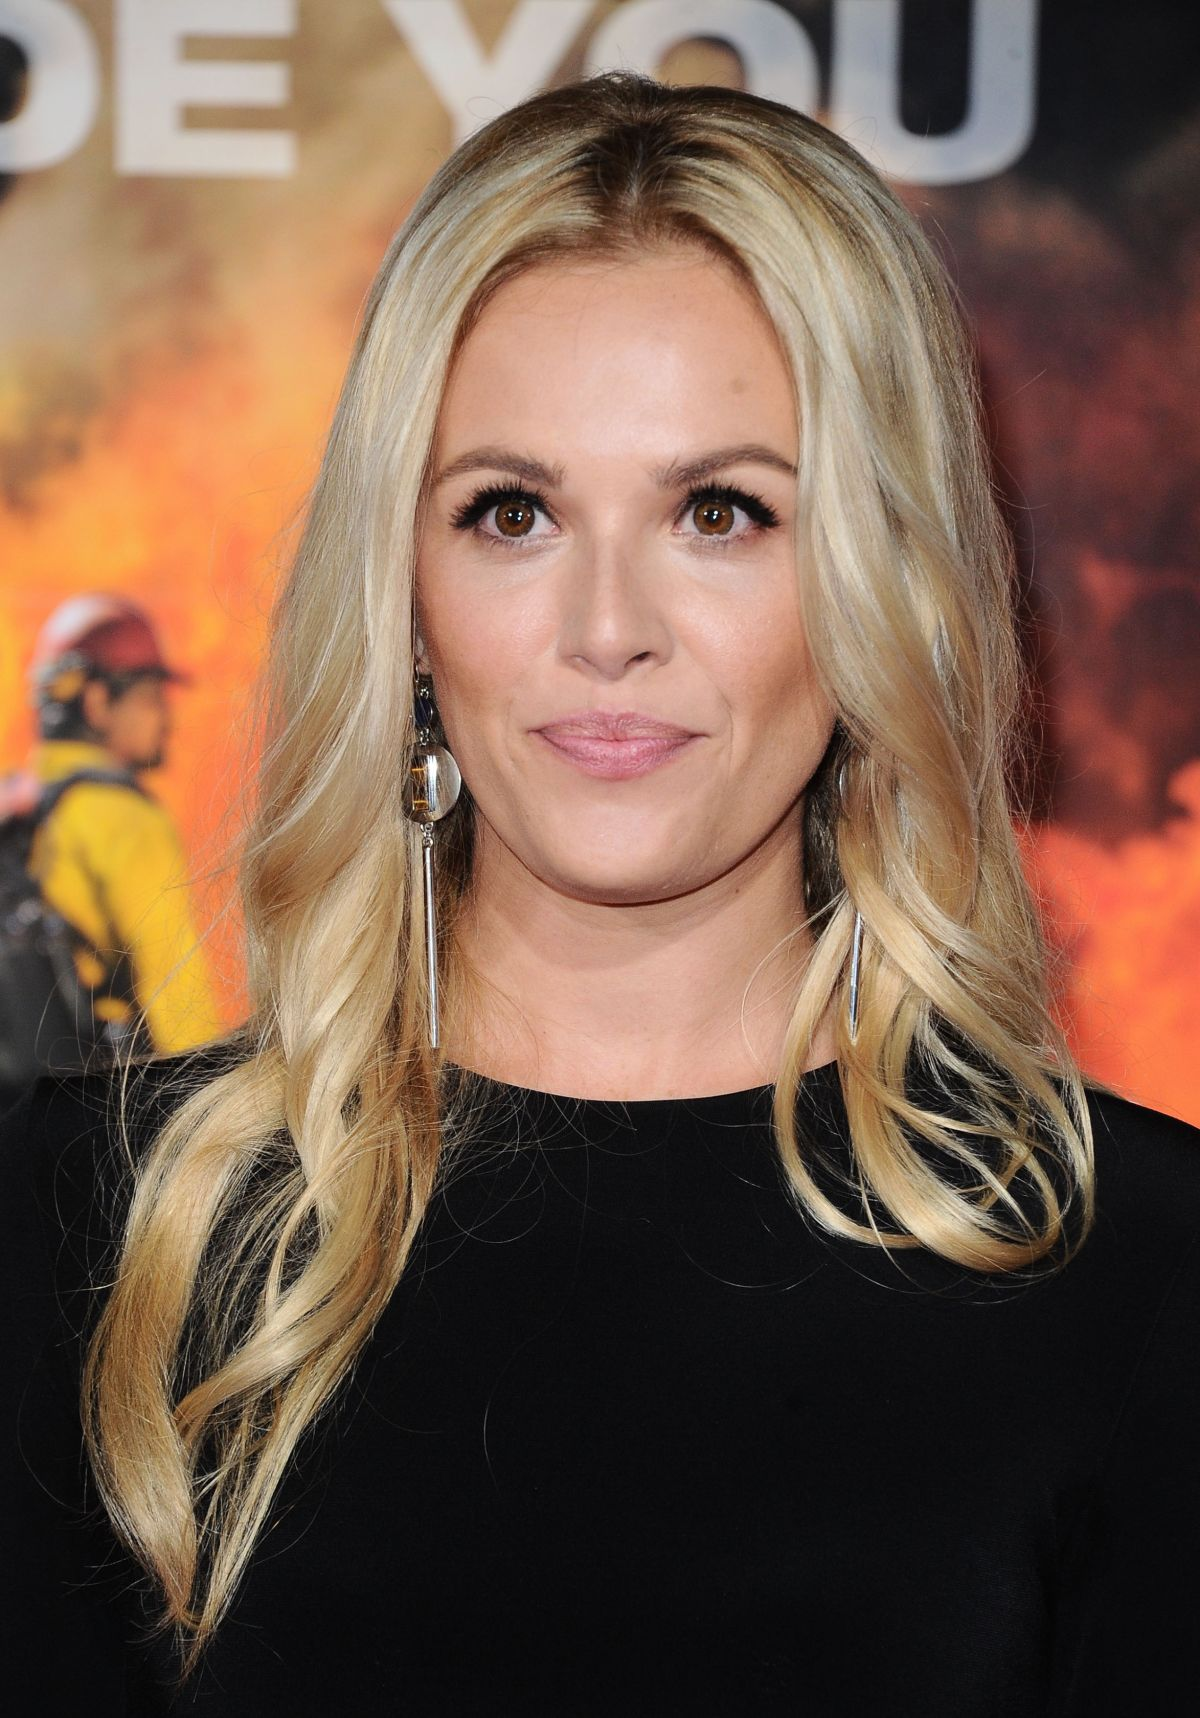 Natalie Hall At 'Only The Brave' film premiere, Los Angeles   natalie-hall-at-only-the-brave-film-premiere-los-angeles-22